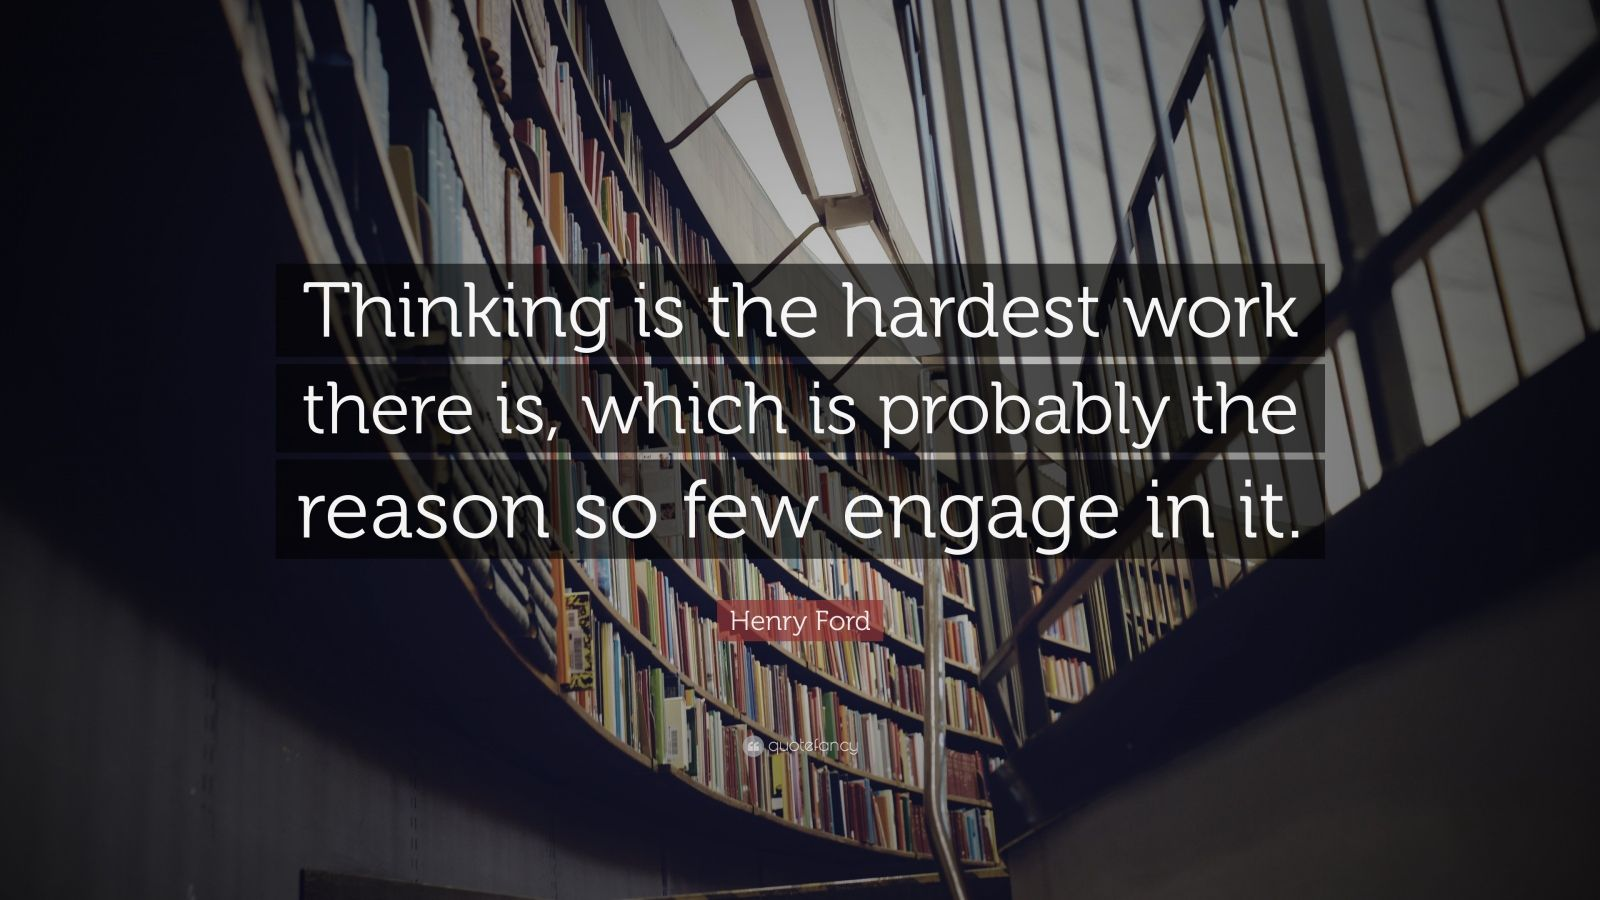 """Henry Ford Quote: """"Thinking is the hardest work there is, which is probably the reason so few engage in it."""""""